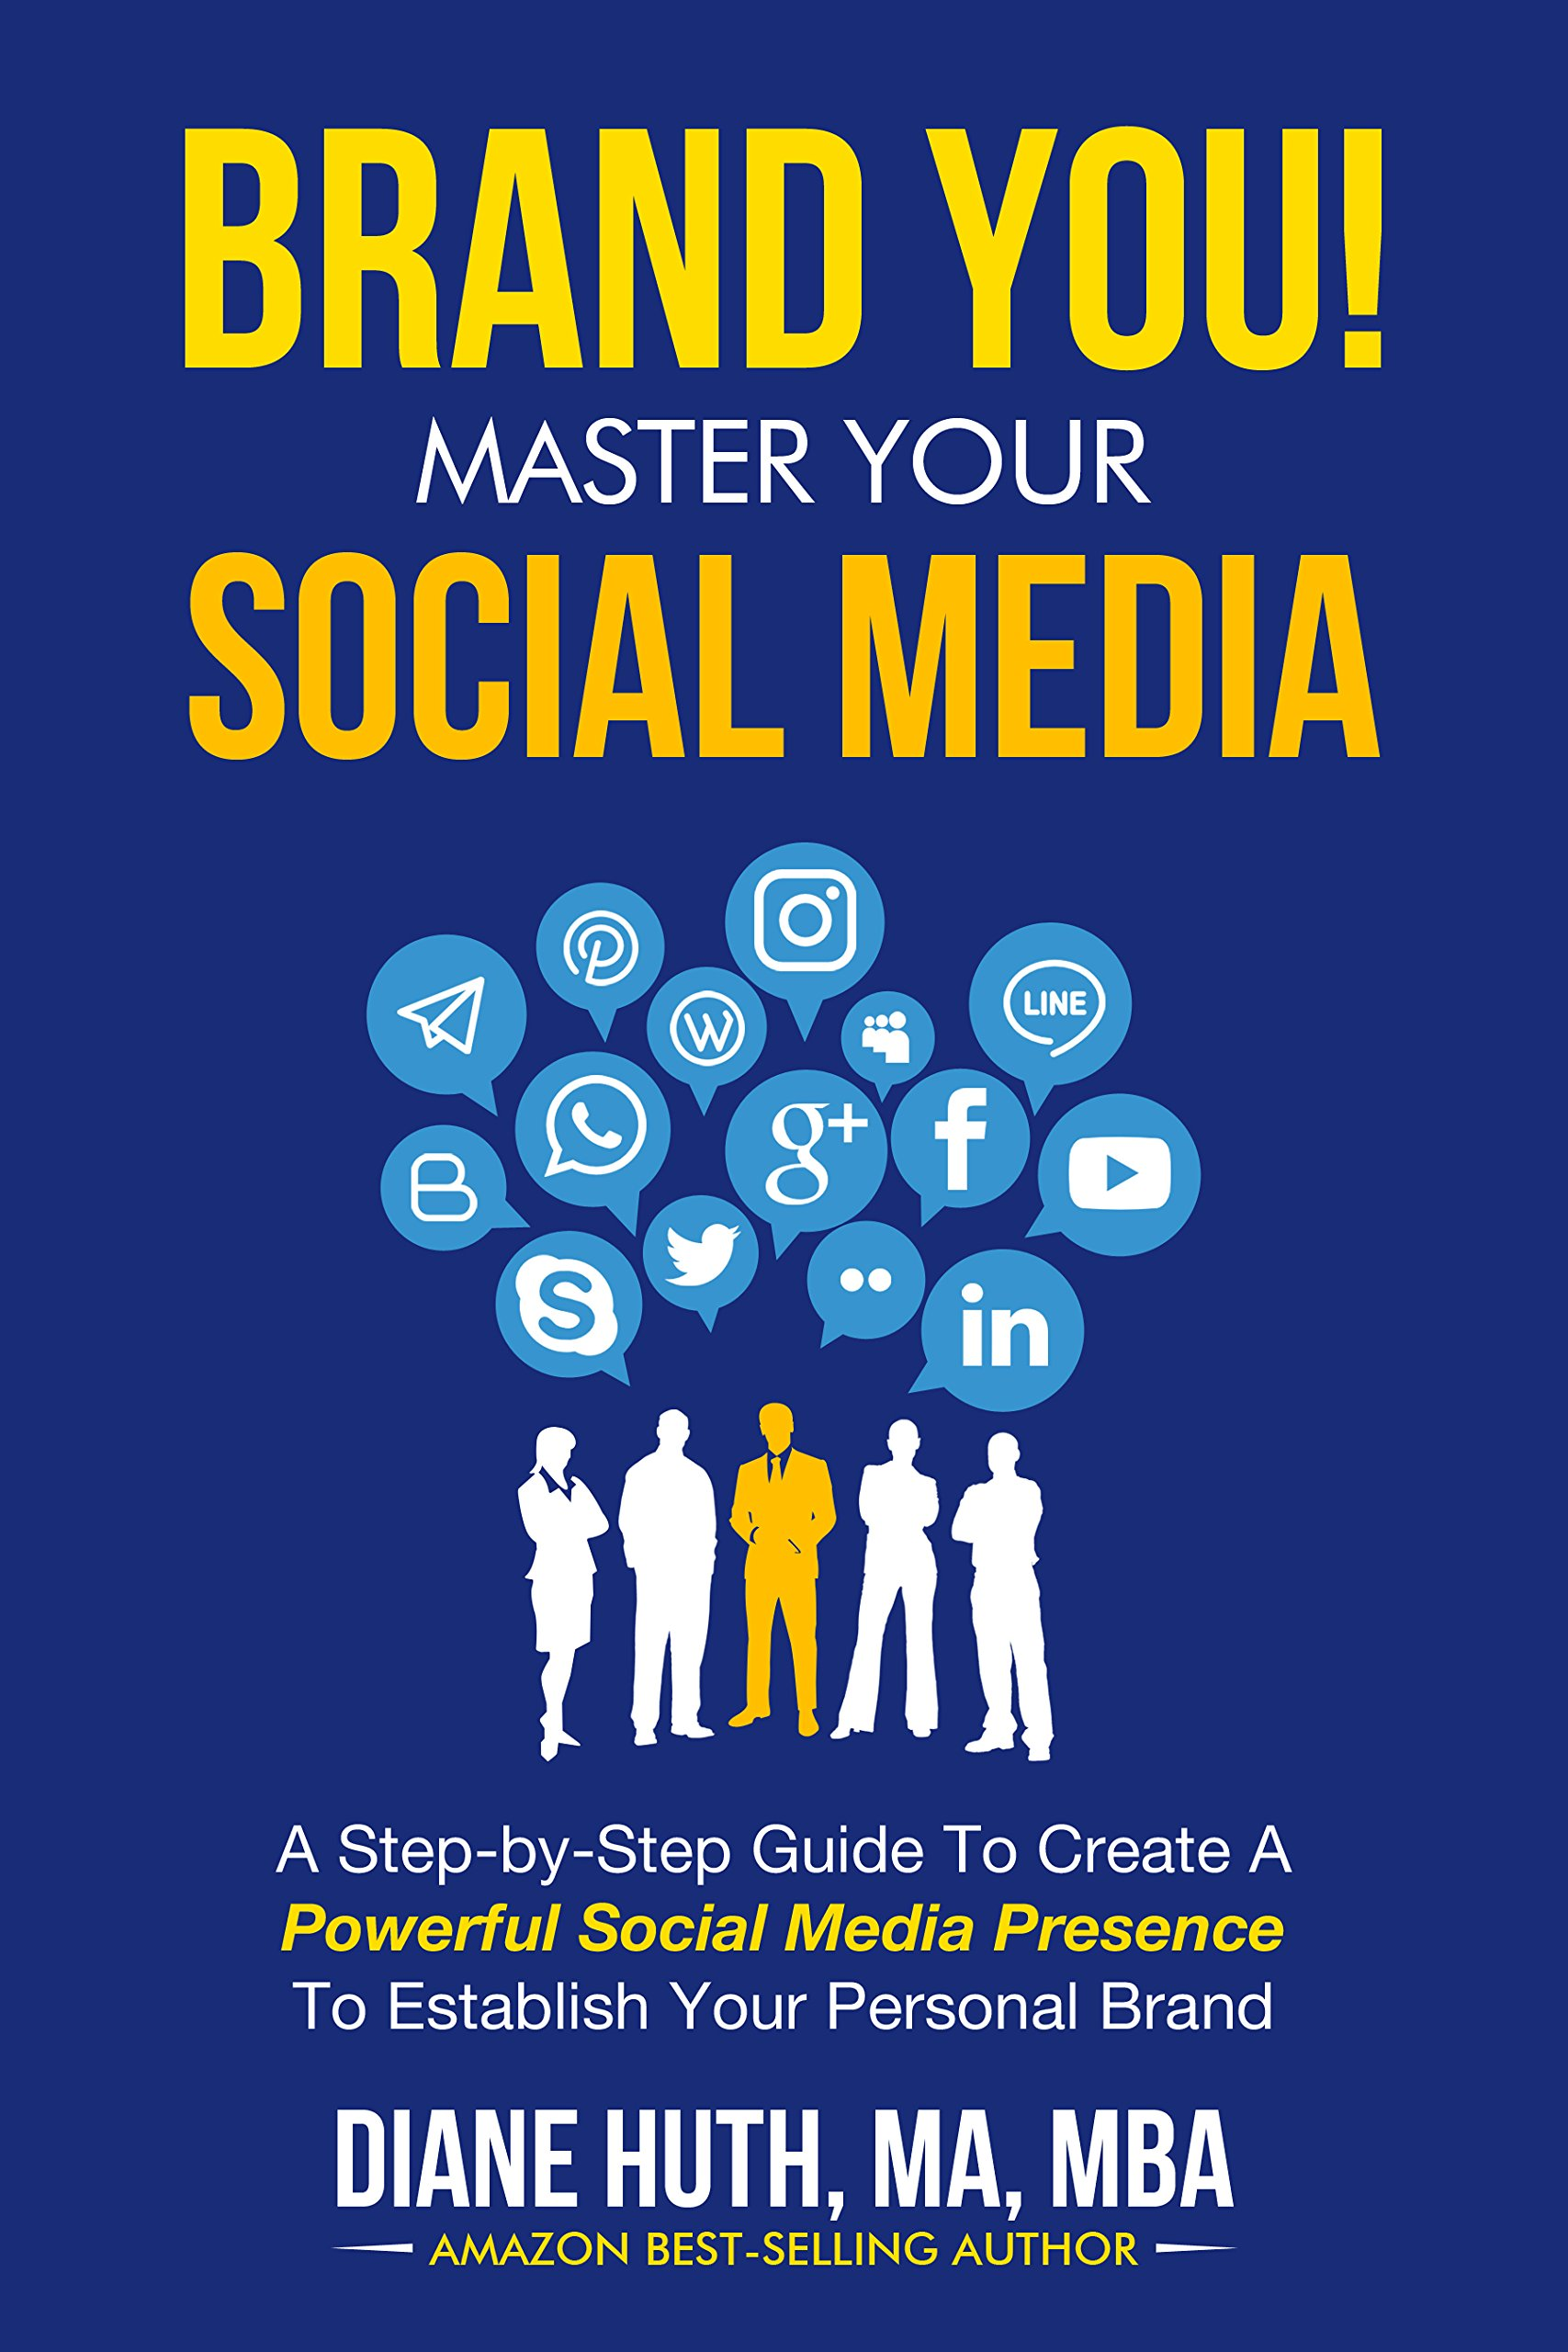 BRAND YOU! Master Your Social Media: A Step-by-Step Guide To Create A Powerful Social Media Presence To Establish Your Personal Brand (BRAND YOU Guide)